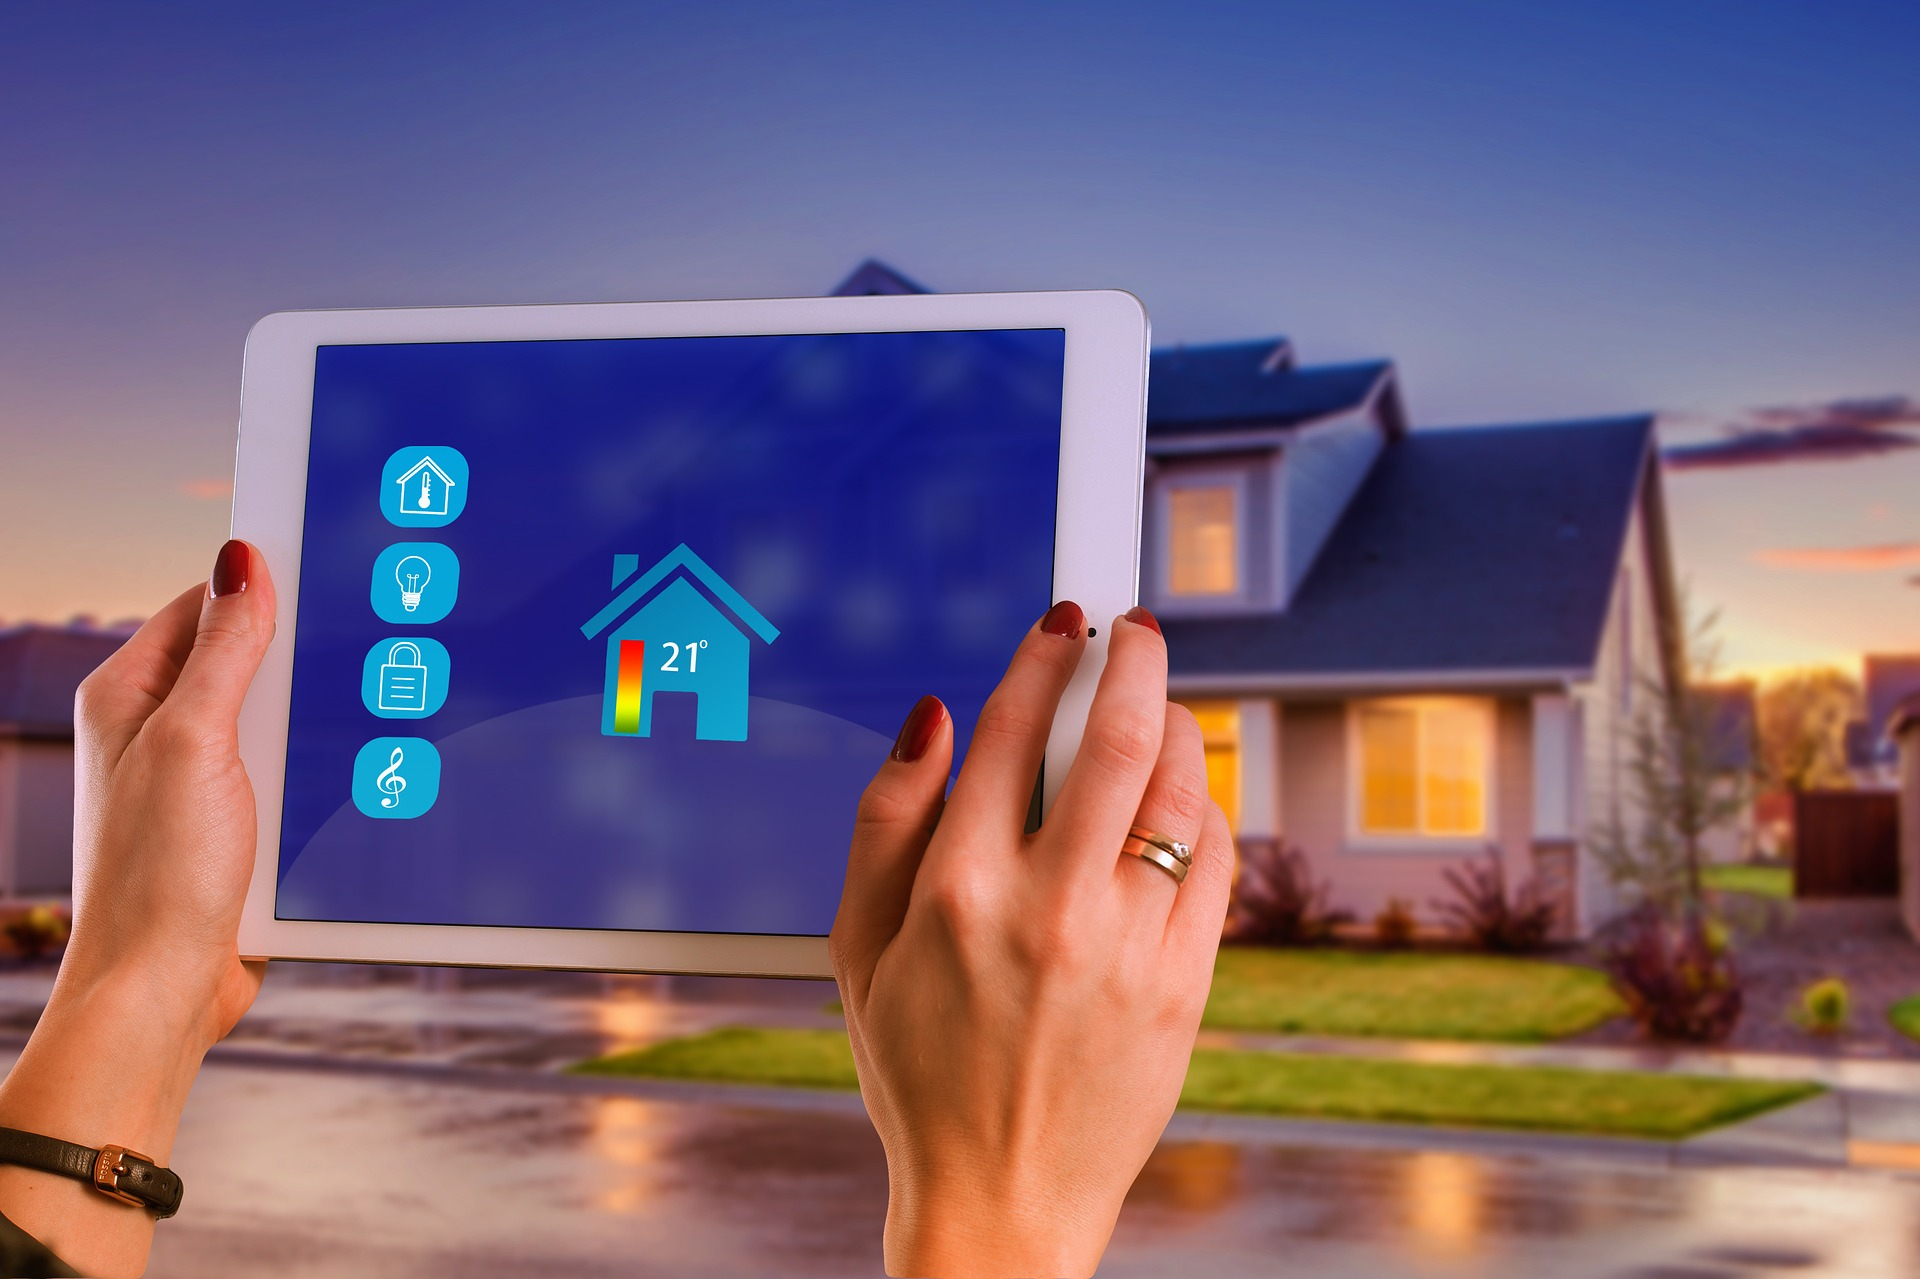 Leveraging on Smart Home Technologies